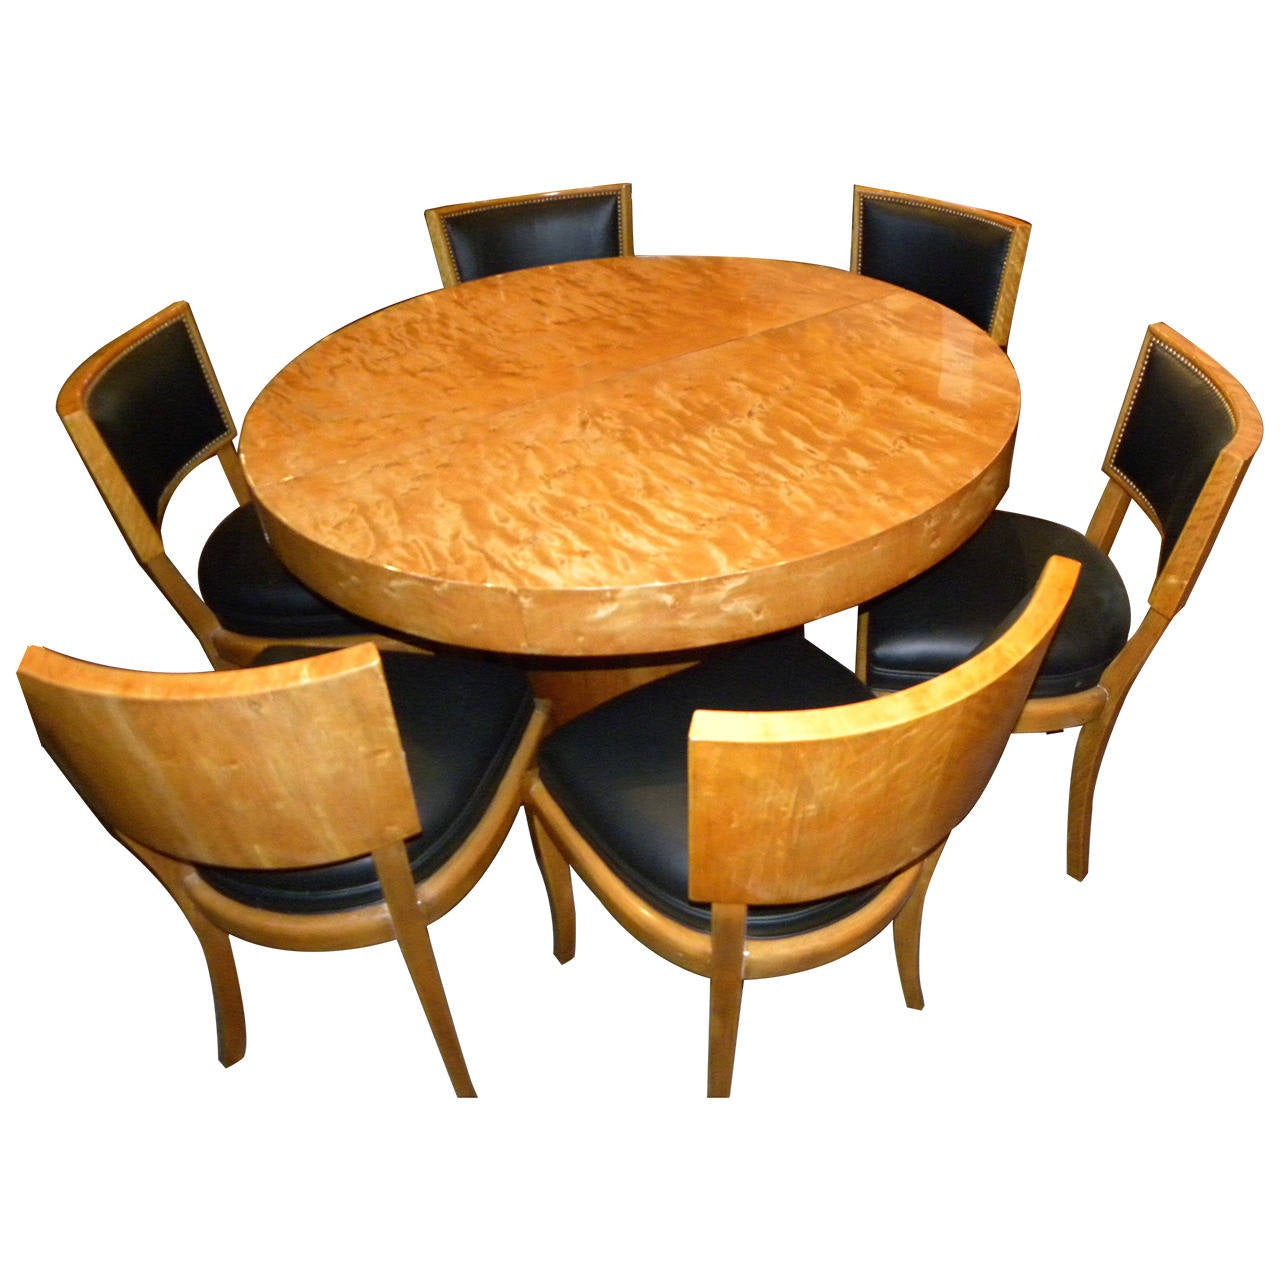 Art deco round mid century dining table and chairs at 1stdibs for Artistic dining room tables